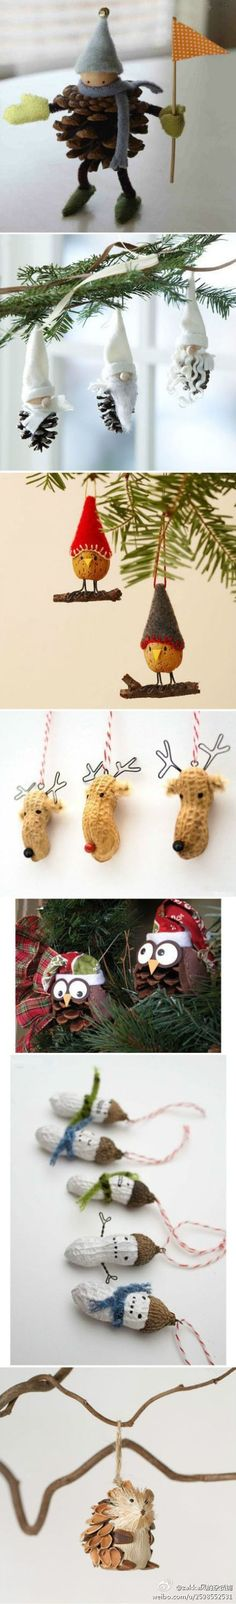 Make 1000 ideas for Christmas decorations – Christmas crafts – Alleideen 1 – Christmas Ideas Noel Christmas, Homemade Christmas, Christmas Projects, All Things Christmas, Winter Christmas, Holiday Crafts, Holiday Fun, Christmas Ornaments, Diy Ornaments